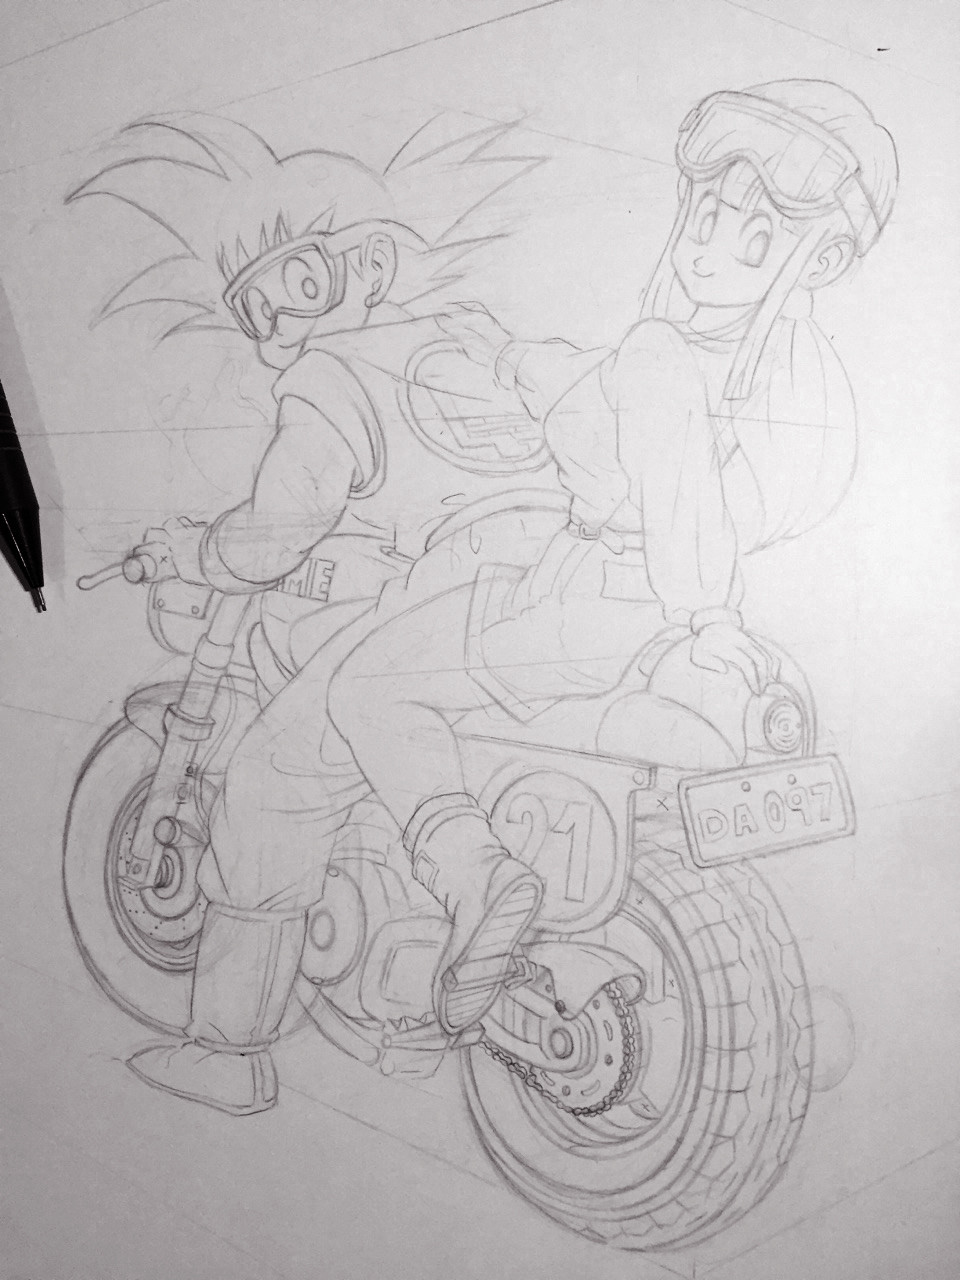 Pencil sketch. Ready for inks.